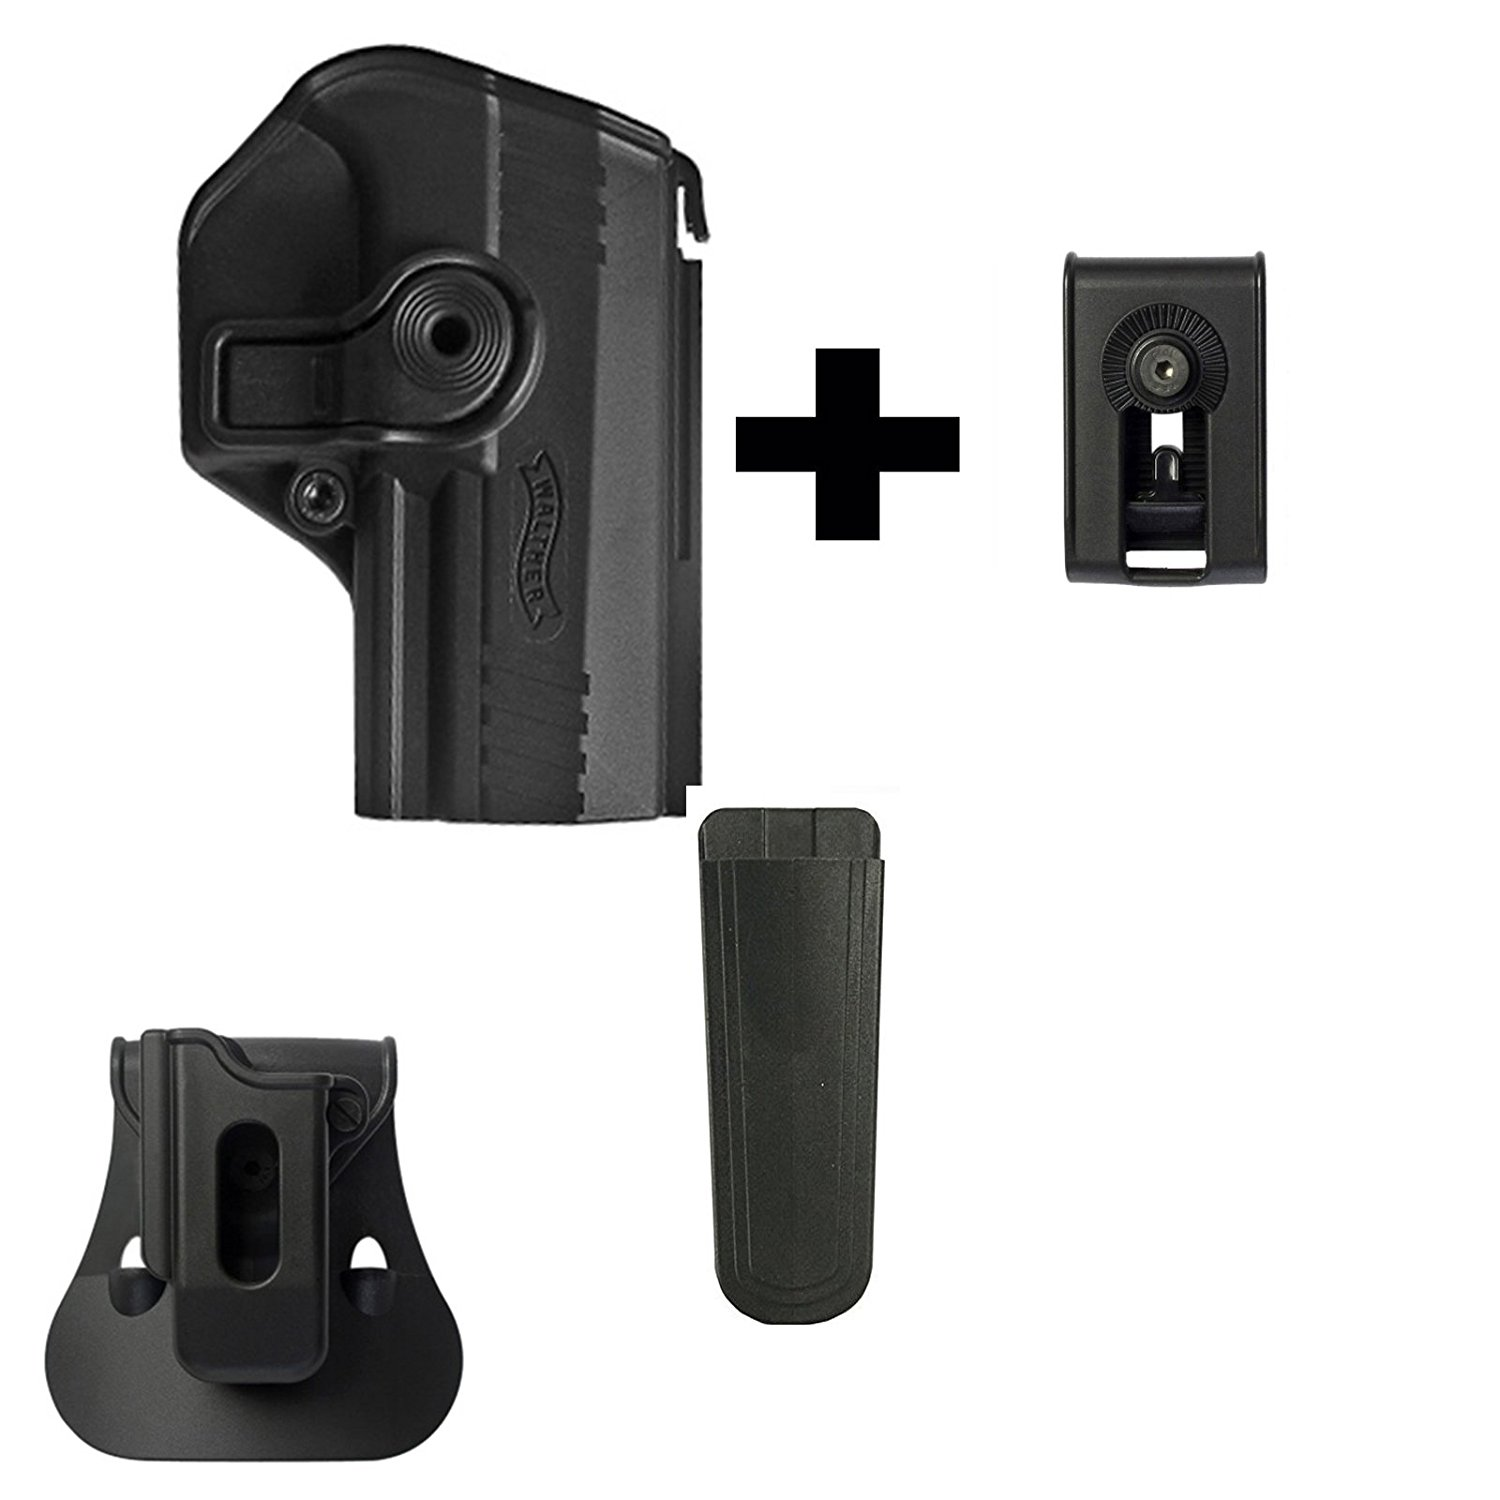 Buy IMI Defense Z2150 Belt Clip Attachment for all Paddle Holsters